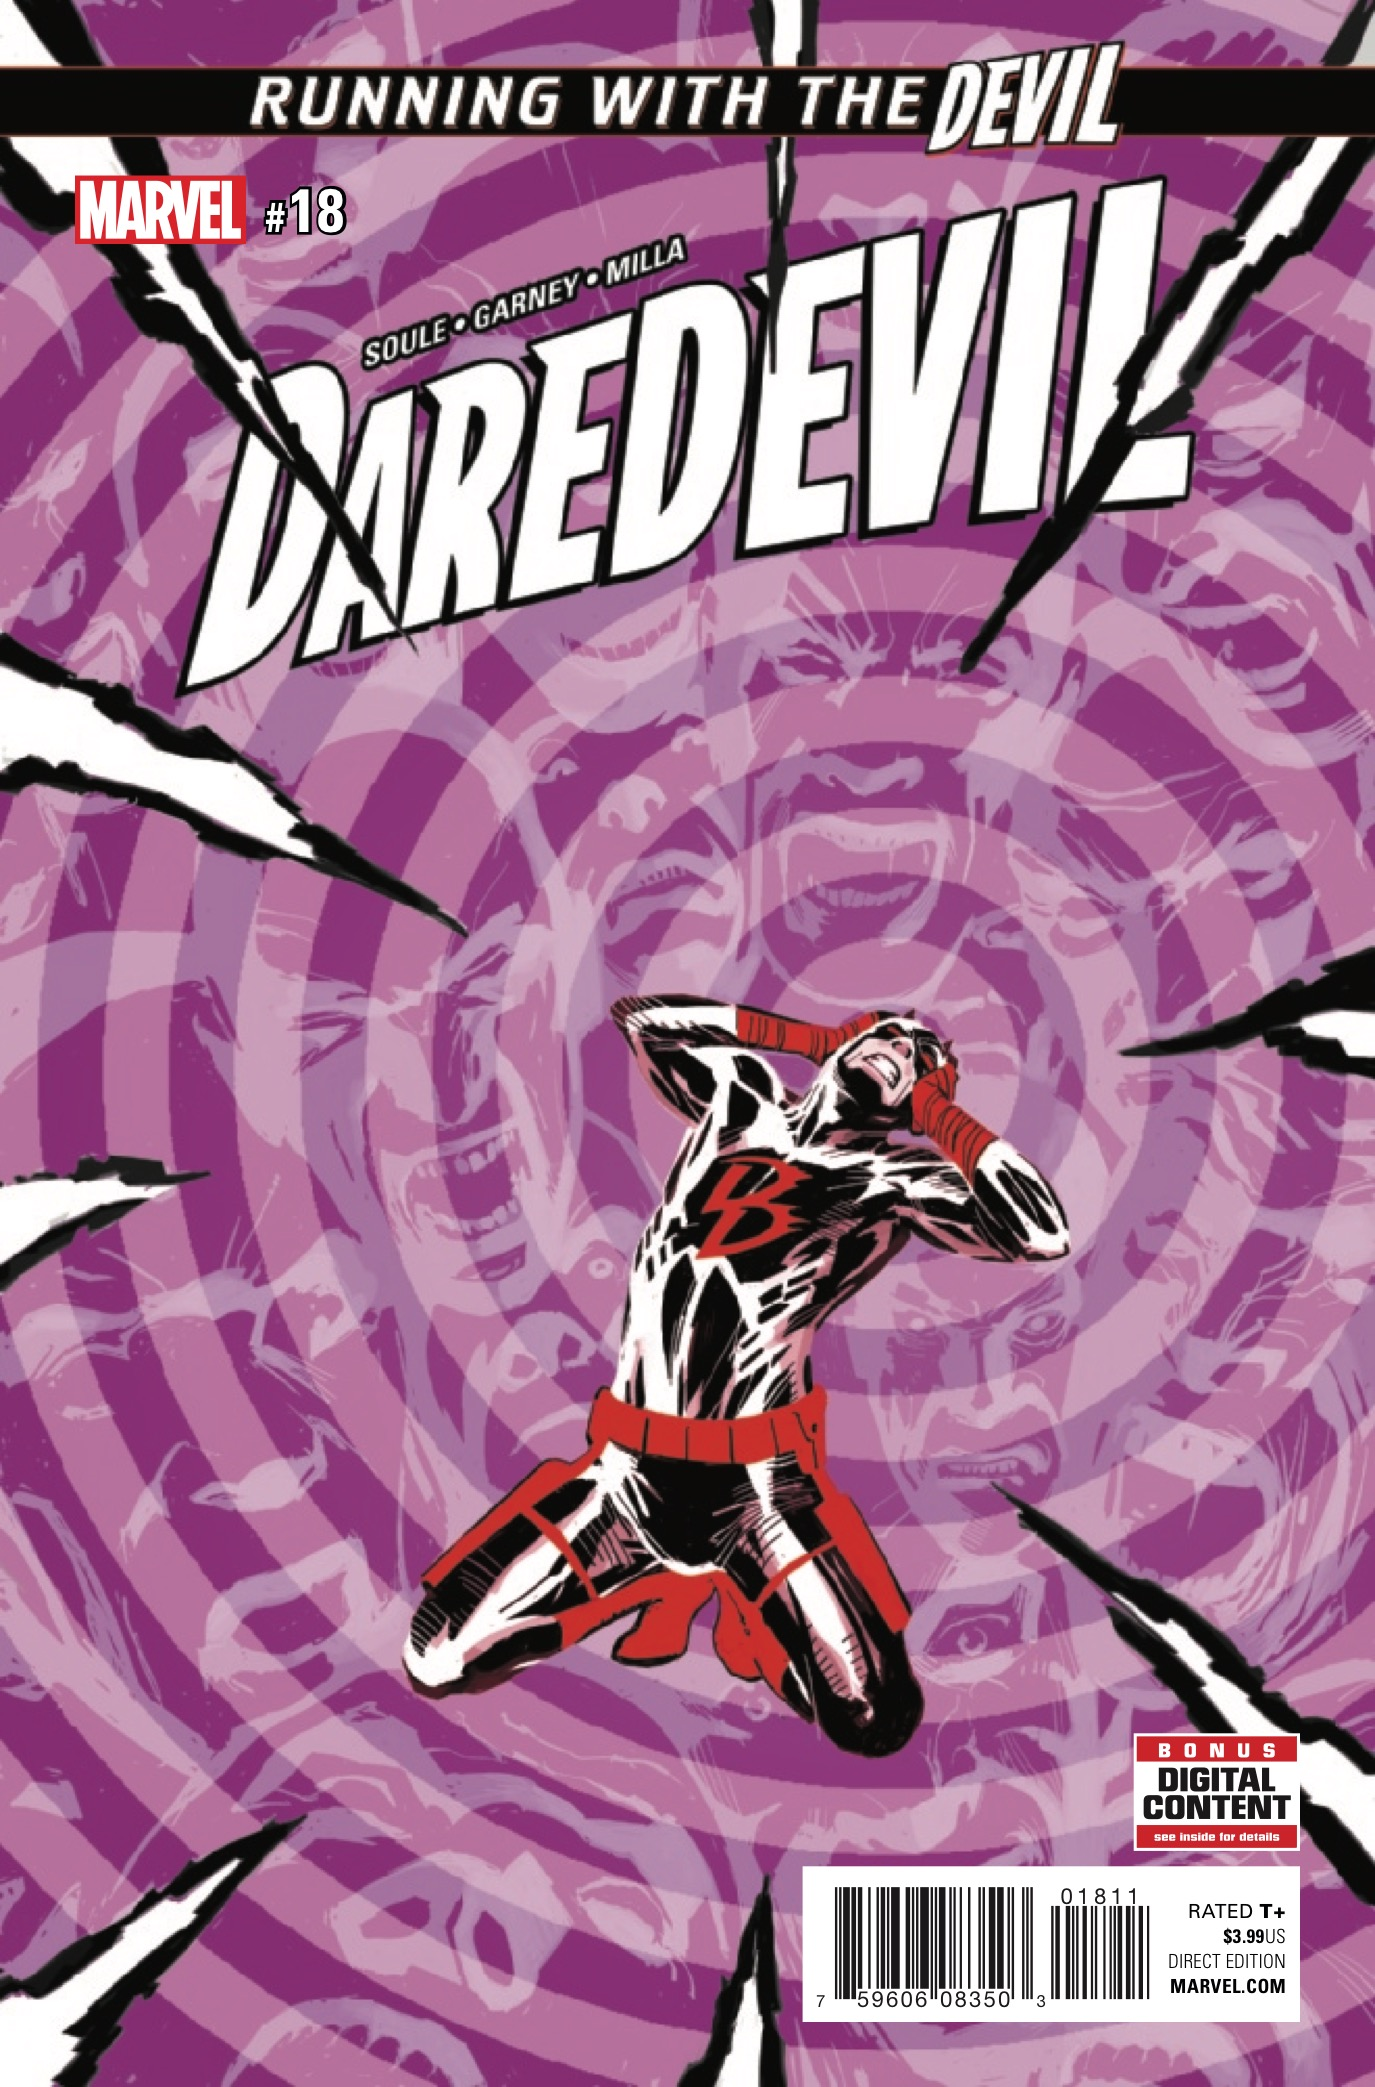 Daredevil #18 Review